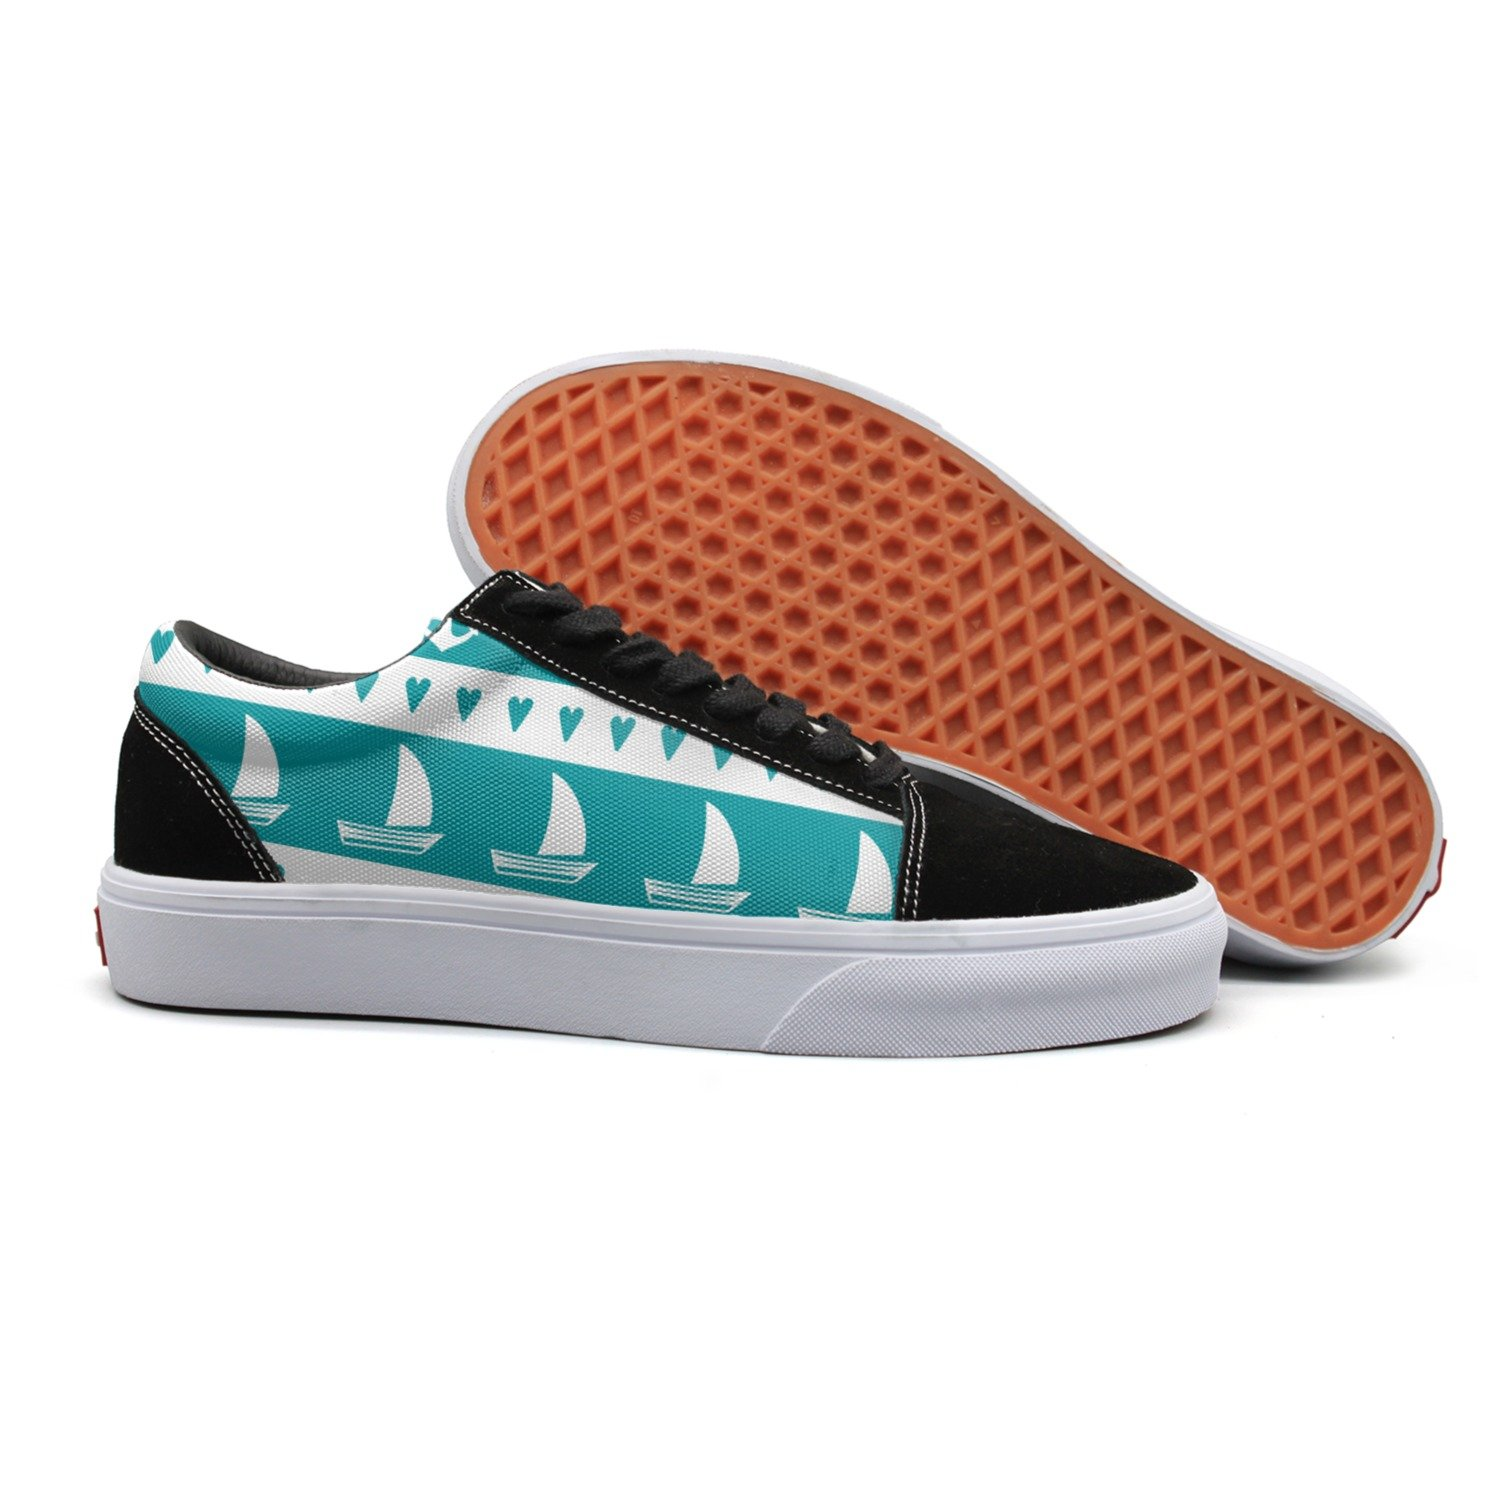 Print Trendy Anchor Sailboat Hear Low Top Canvas Sneakers